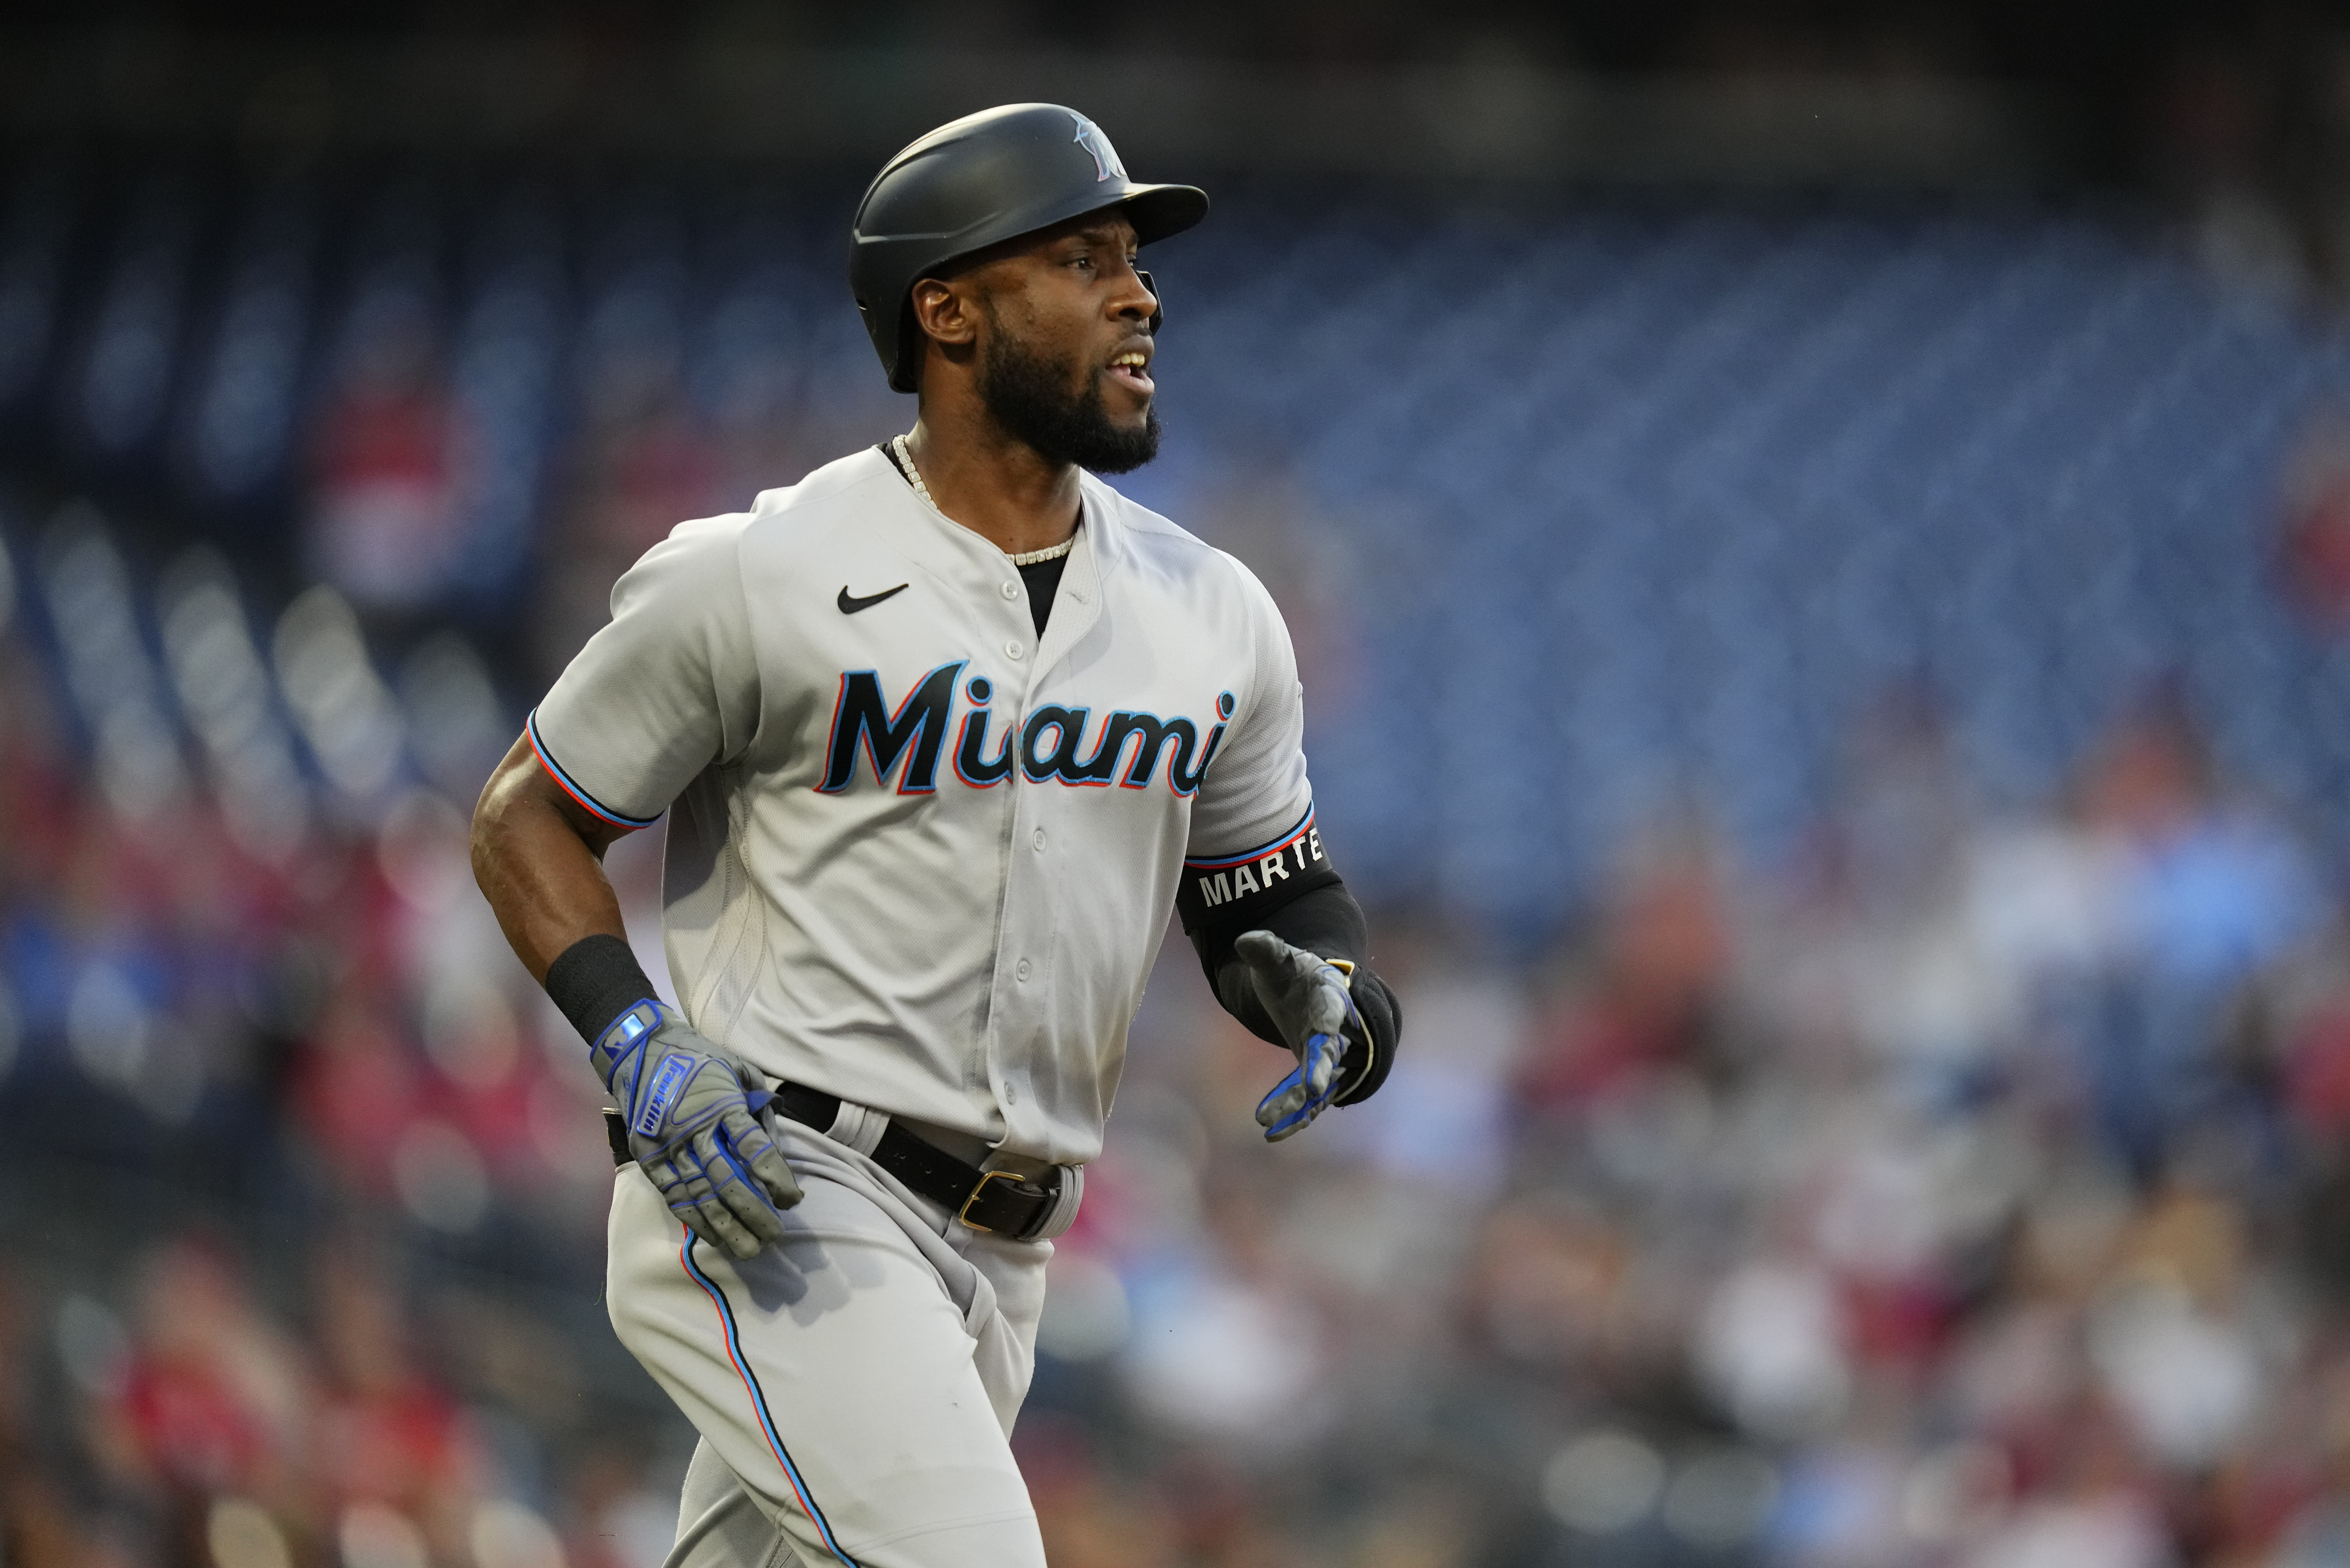 Report: Starling Marte Offered Multiyear Contract by Marlins Ahead of Trade Deadline